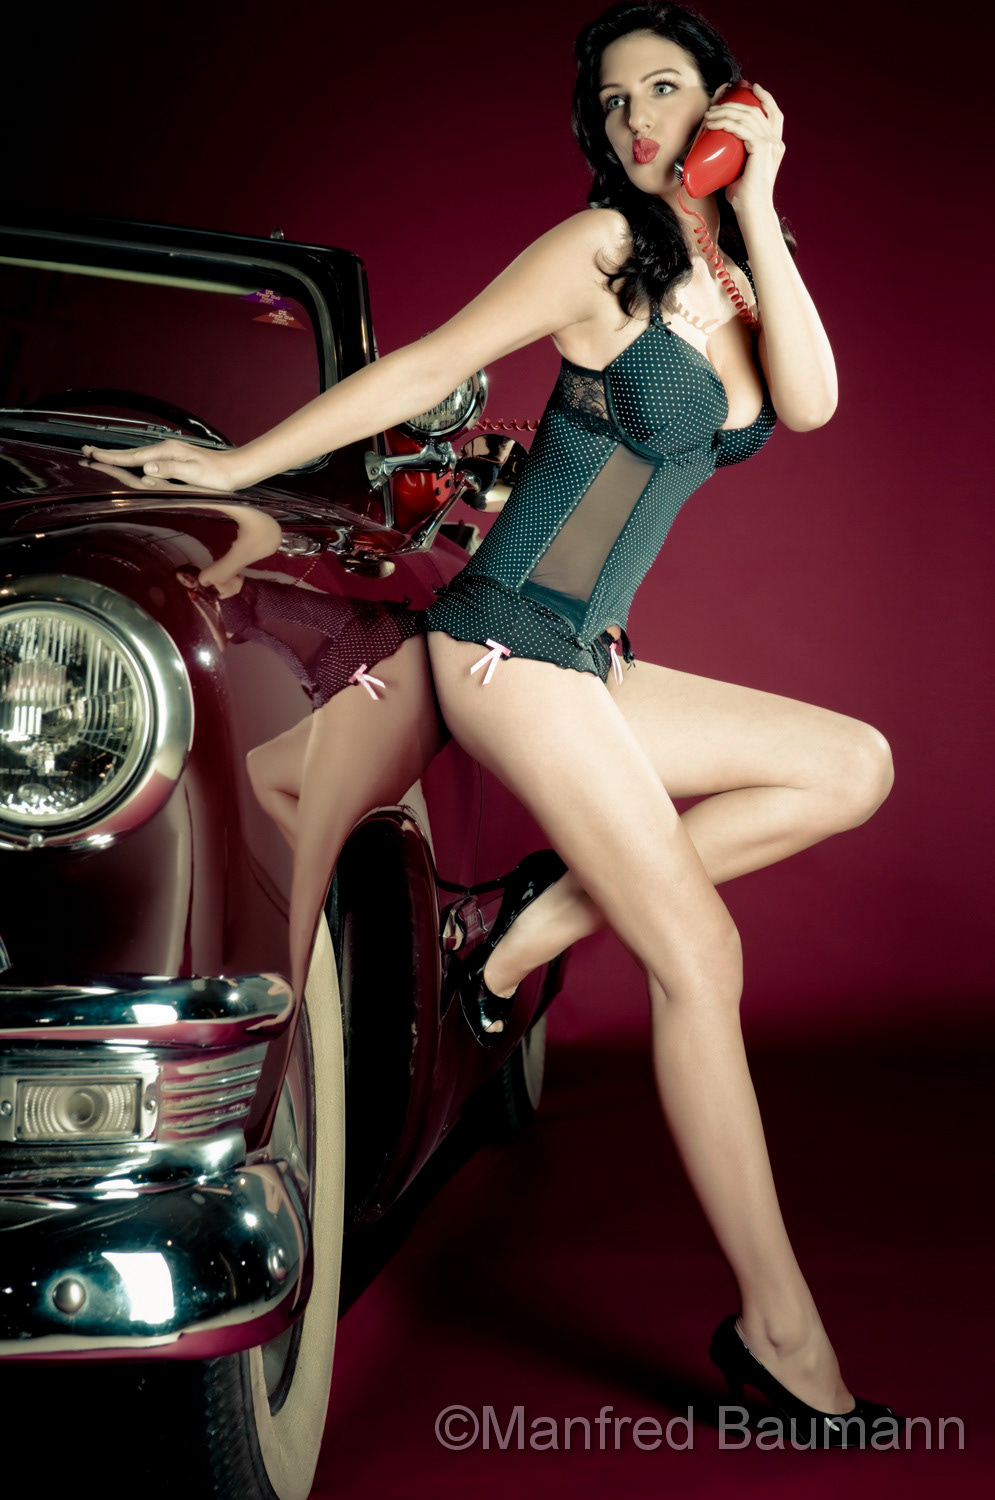 PIN UP PHOTOGRAPHY by Manfred Baumann